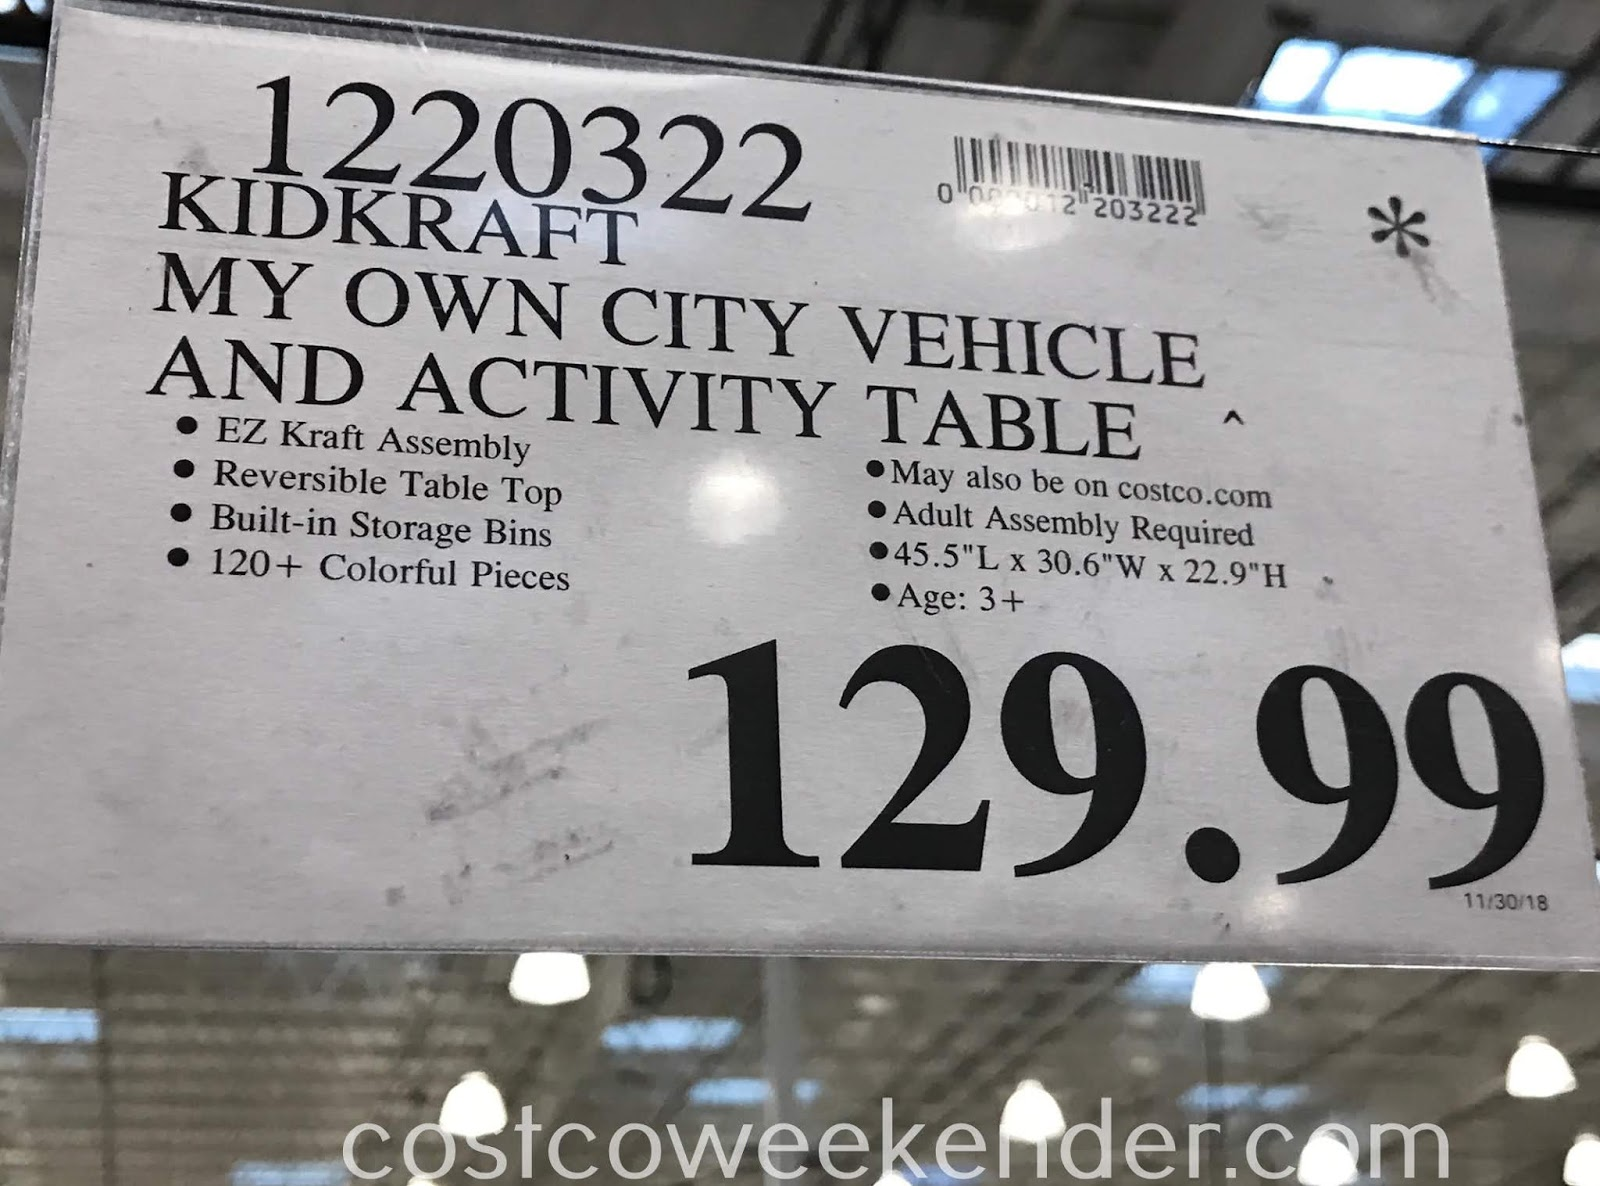 Deal for the KidKraft My Own City Vehicle and Activity Table at Costco